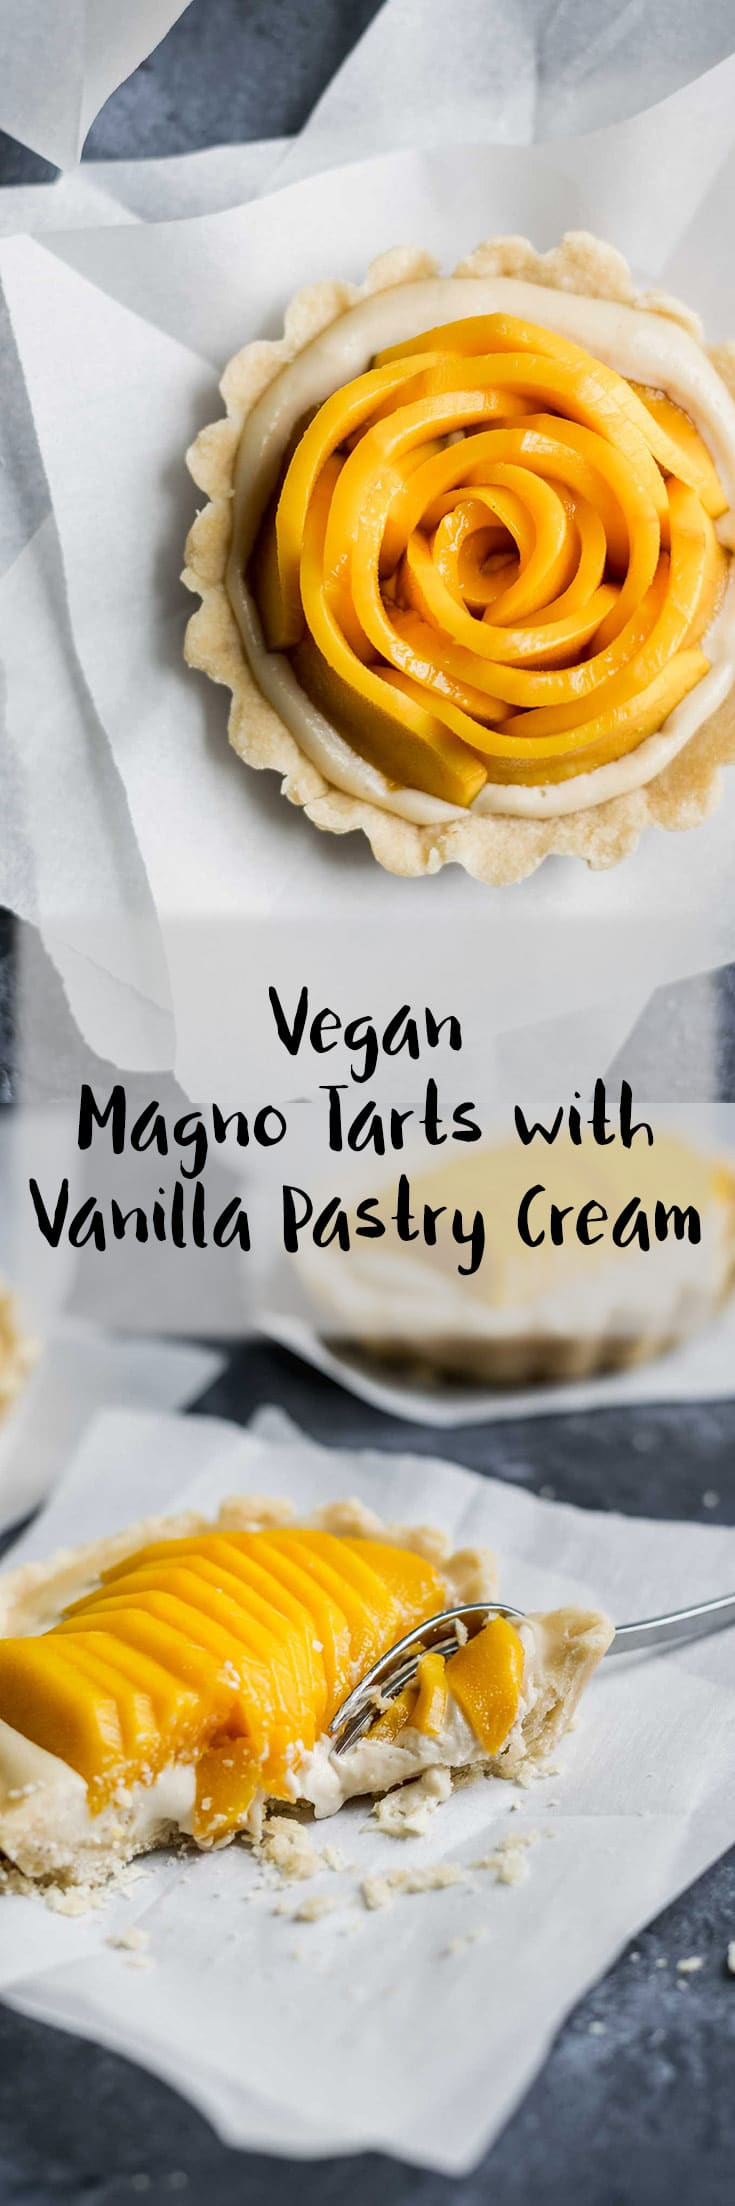 Buttery shortbread crust is filled with a creamy cashew and coconut based pastry cream and topped with fresh cut mango for a delicious sweet vegan treat. | thecuriouschickpea.com #vegan #vegandessert #mangoes #veganrecipes